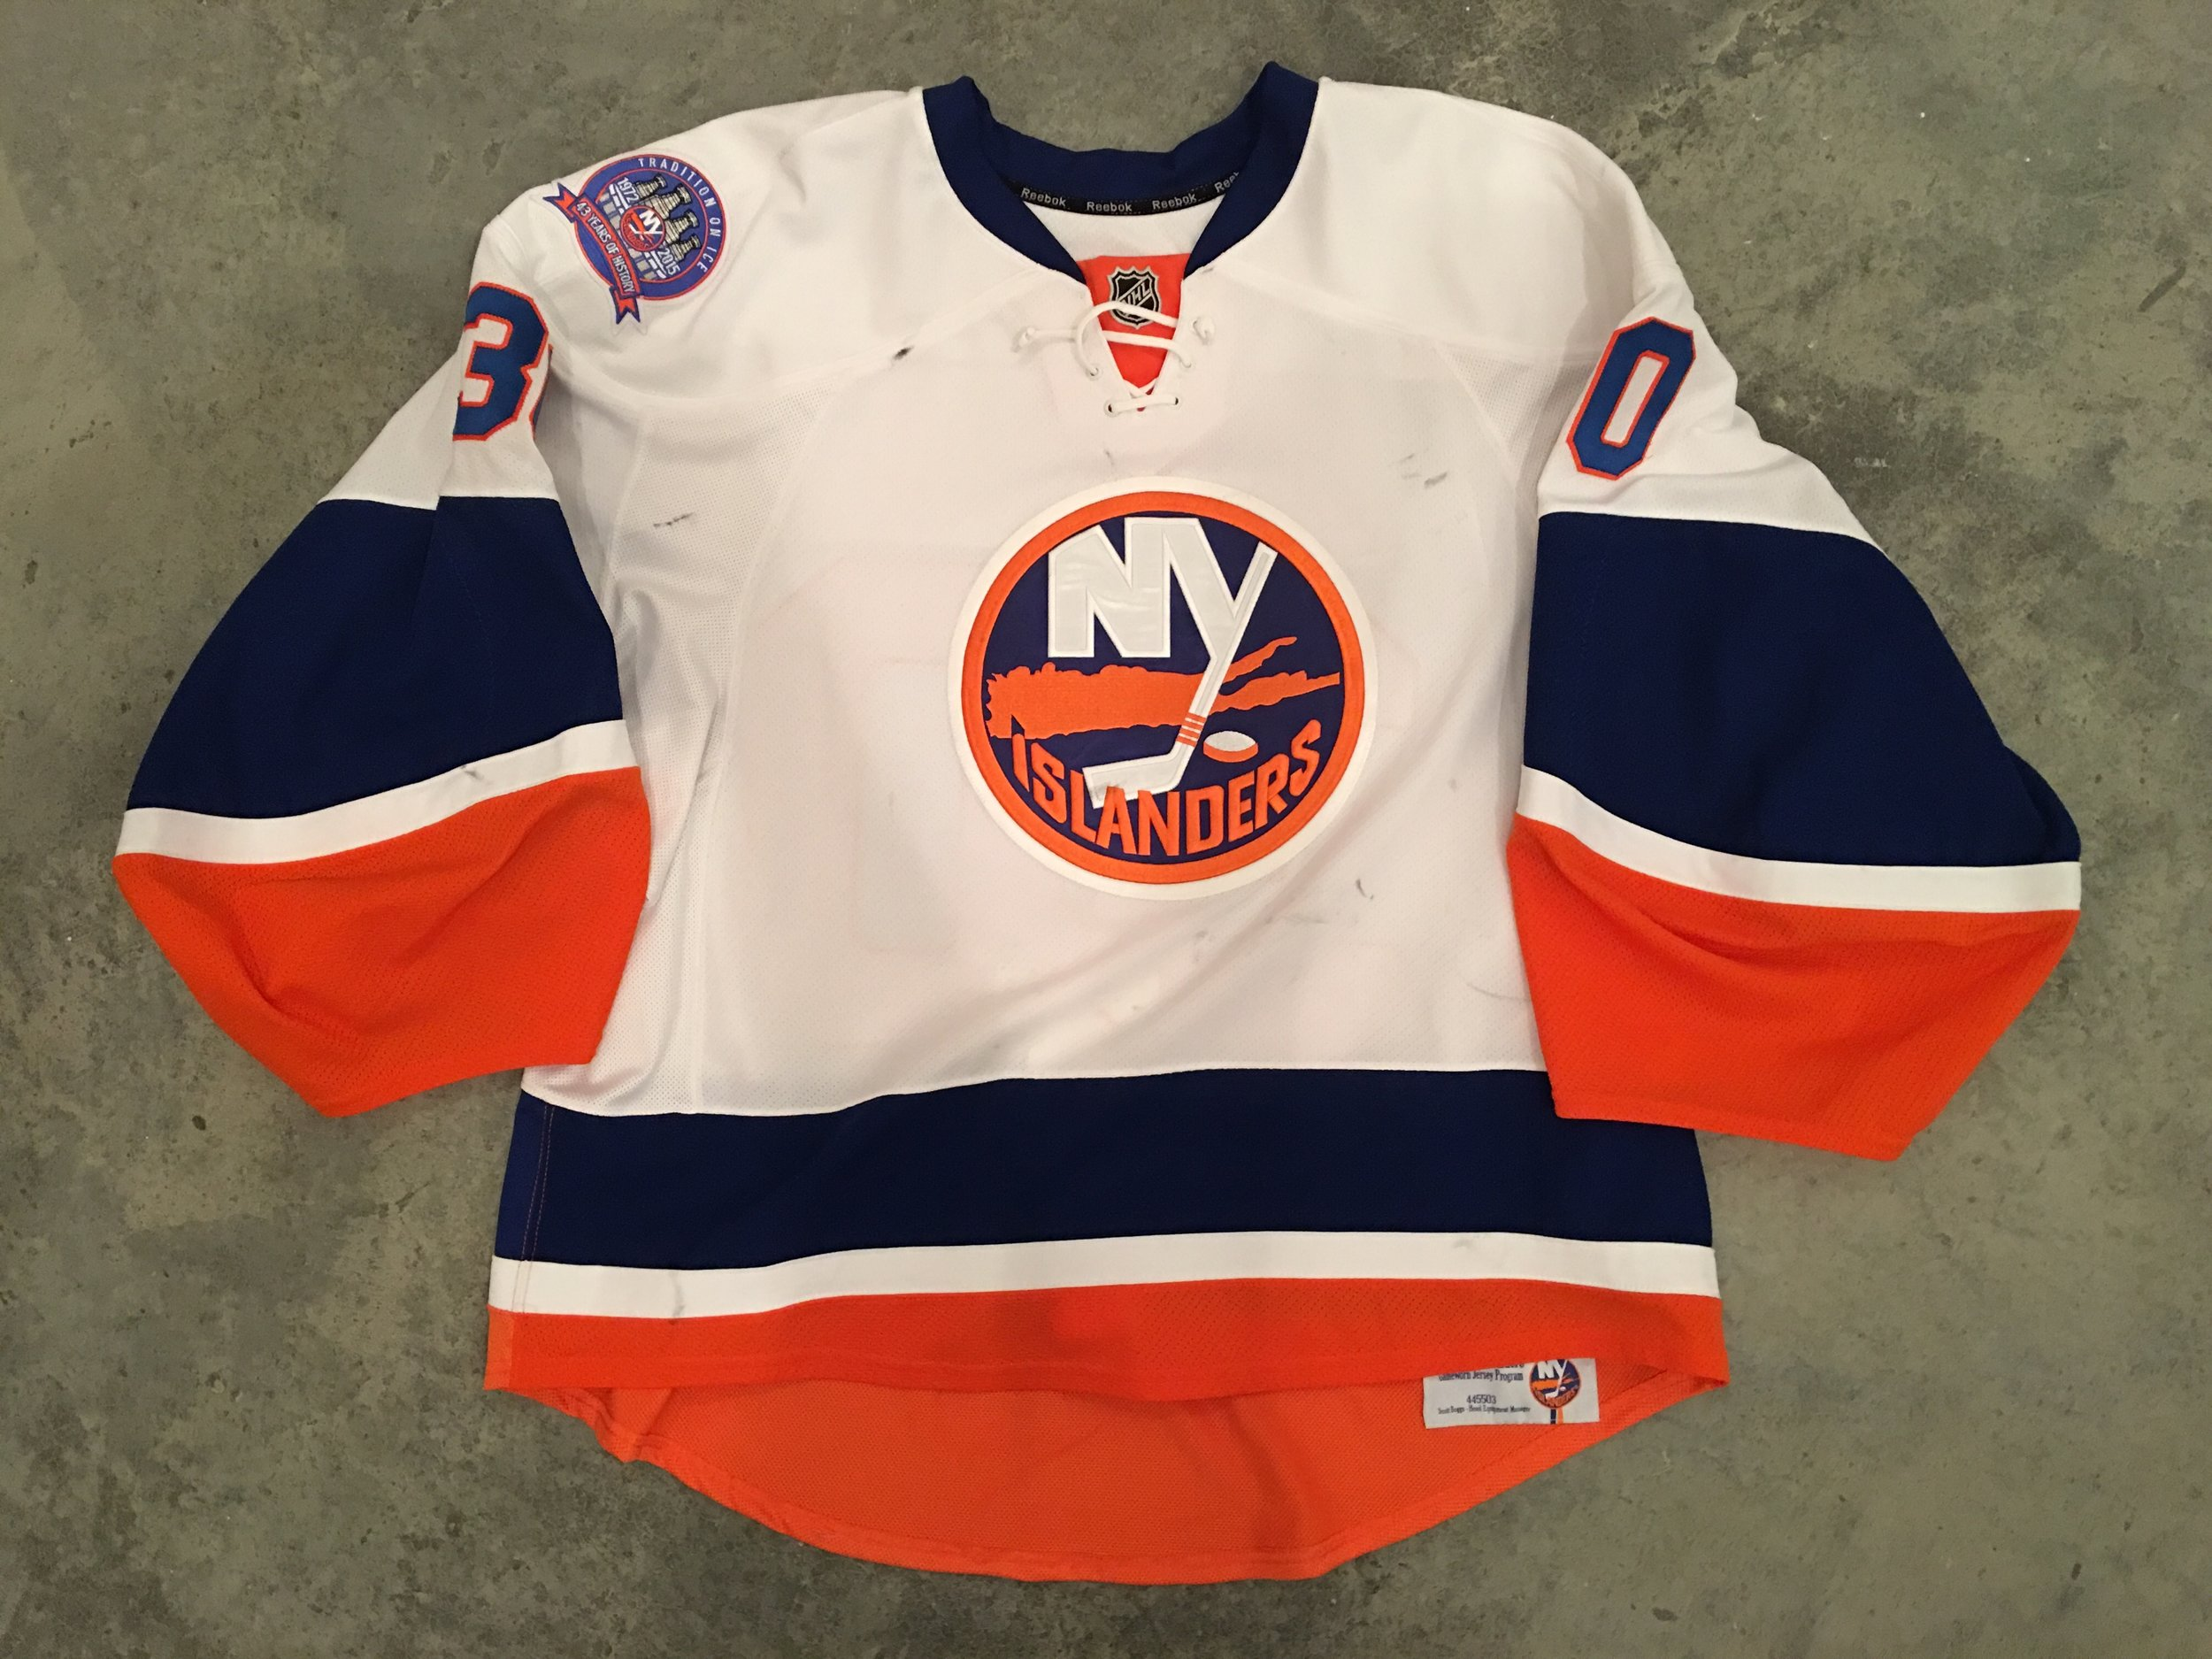 2014-15 Chad Johnson game worn road jersey with Islanders Tradition on Ice patch